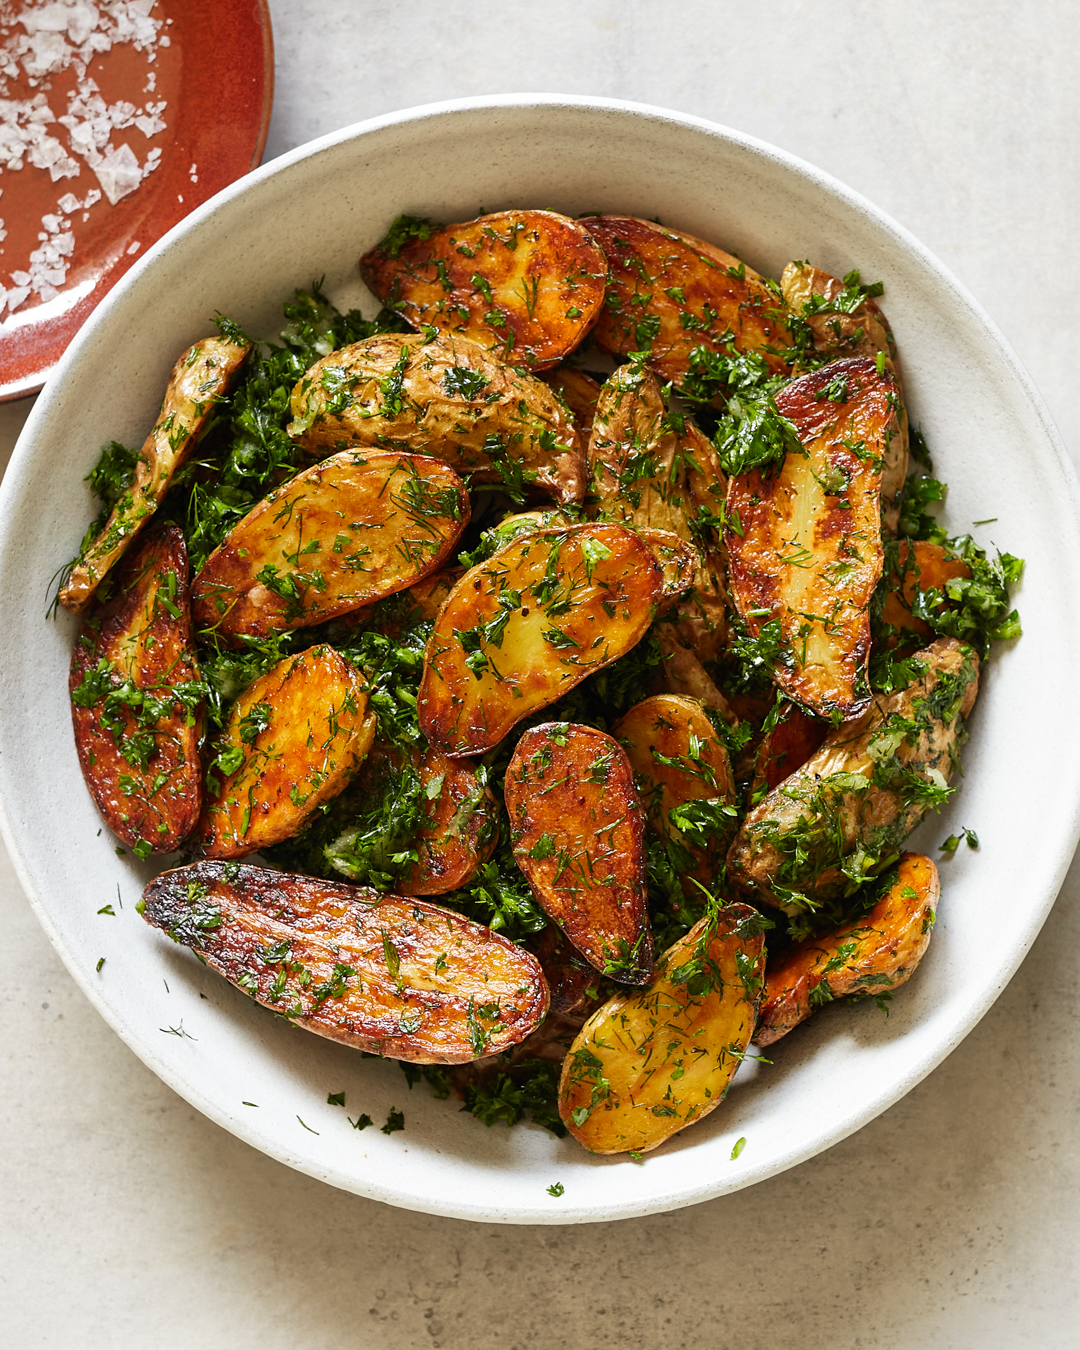 Perfectly Roasted Garlic and Herb Potatoes, Whole30